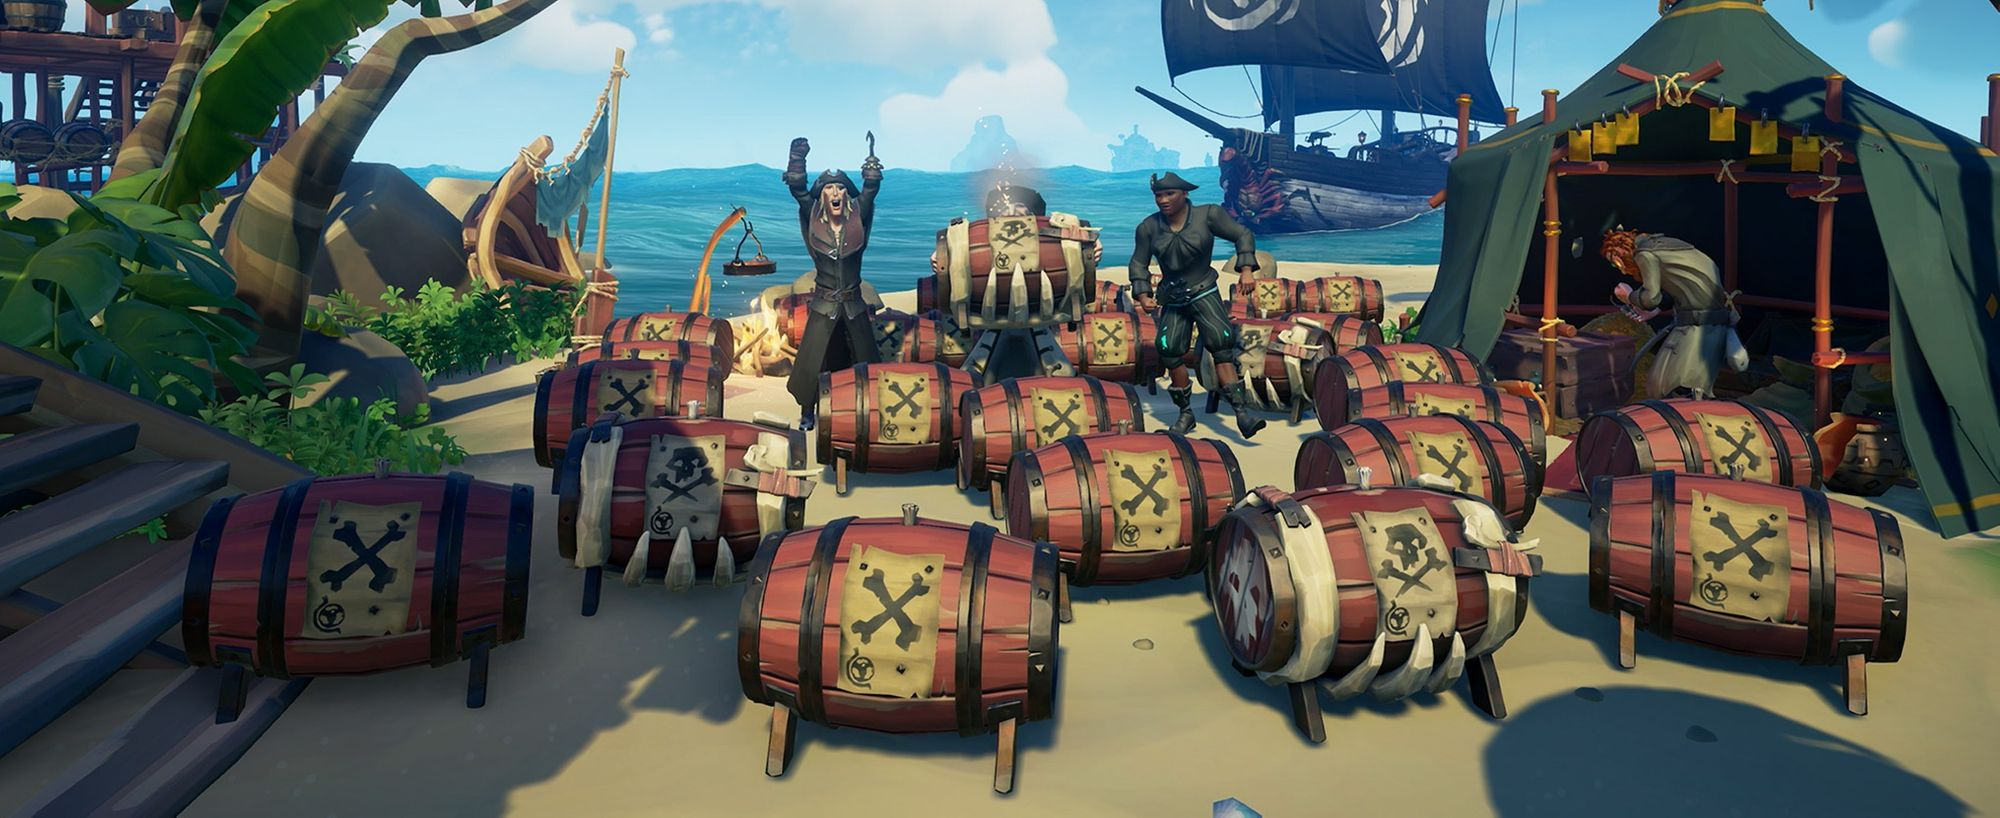 Sea of Thieves update 'Black Powder Stashes' released